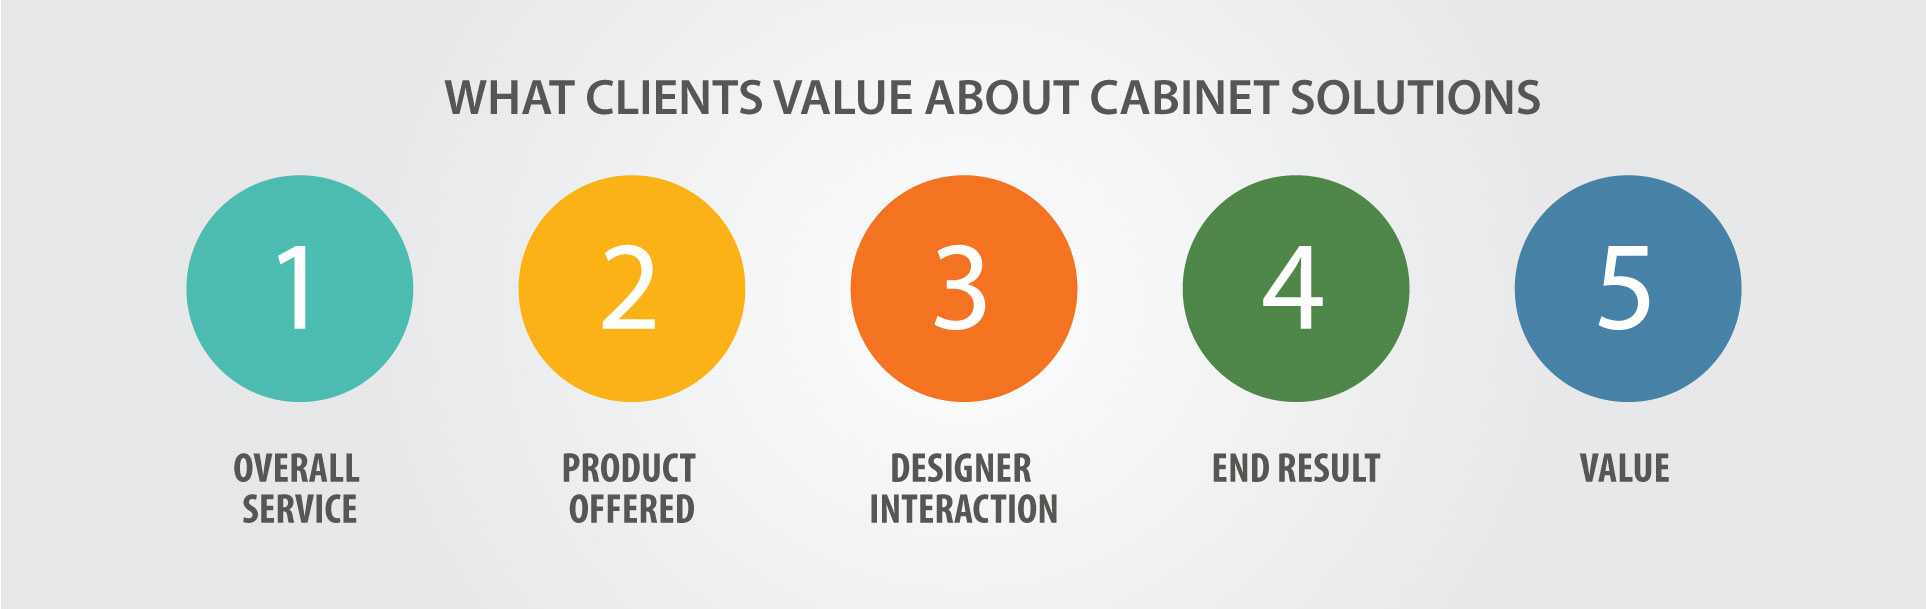 cabinet-solutions-what-clients-value